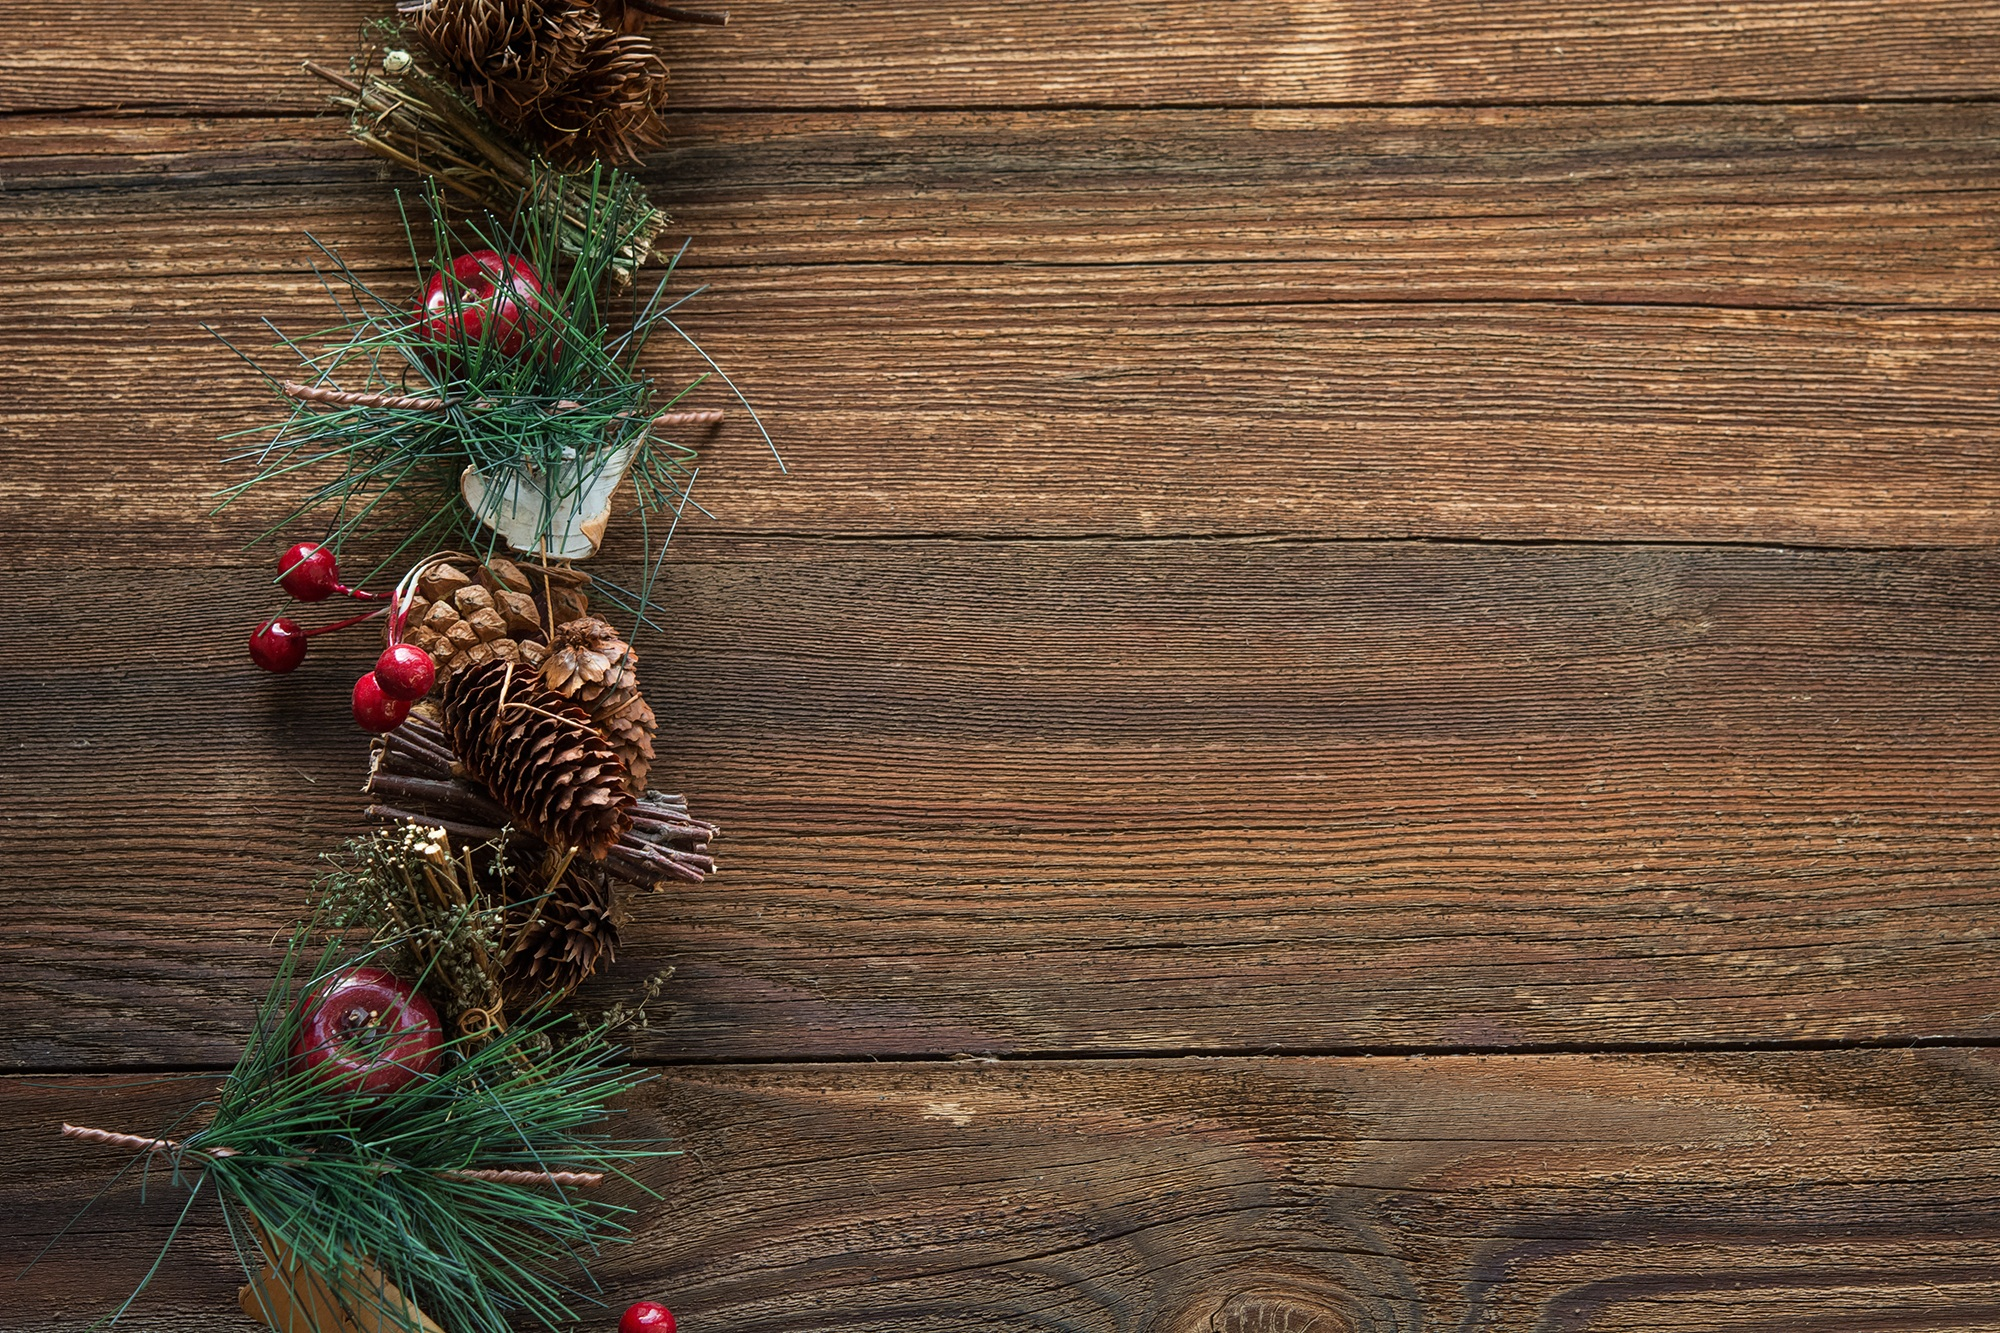 Free stock photo of wood, texture, table, tree